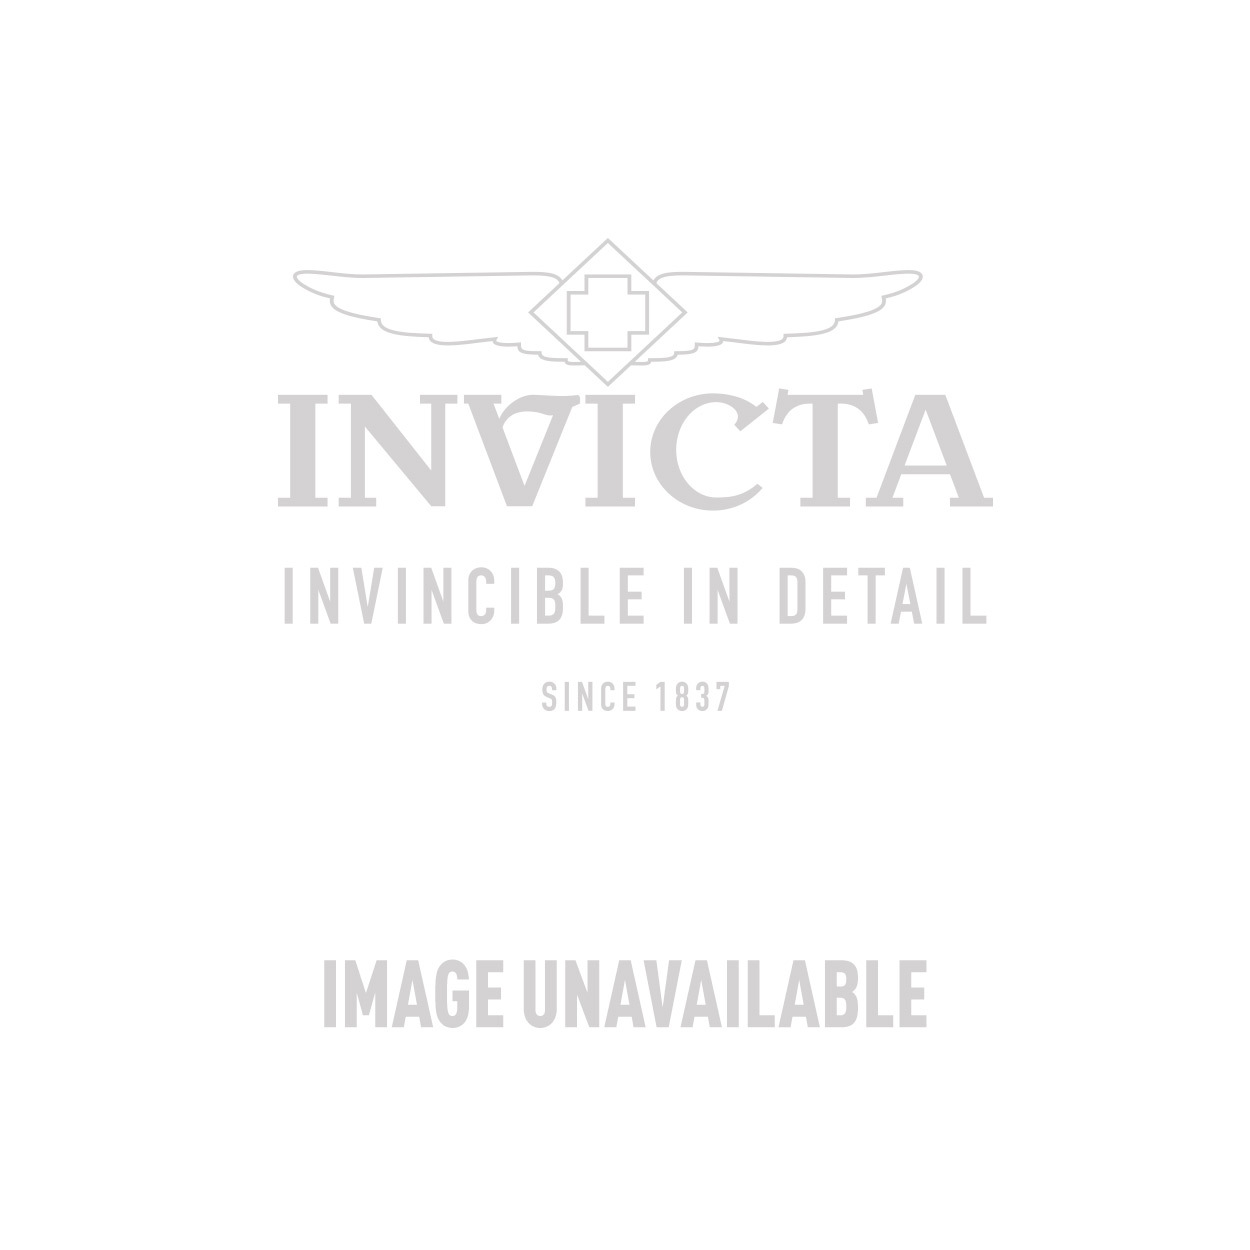 Invicta Specialty Quartz Watch - Gold case with Gold tone Stainless Steel band - Model 14878